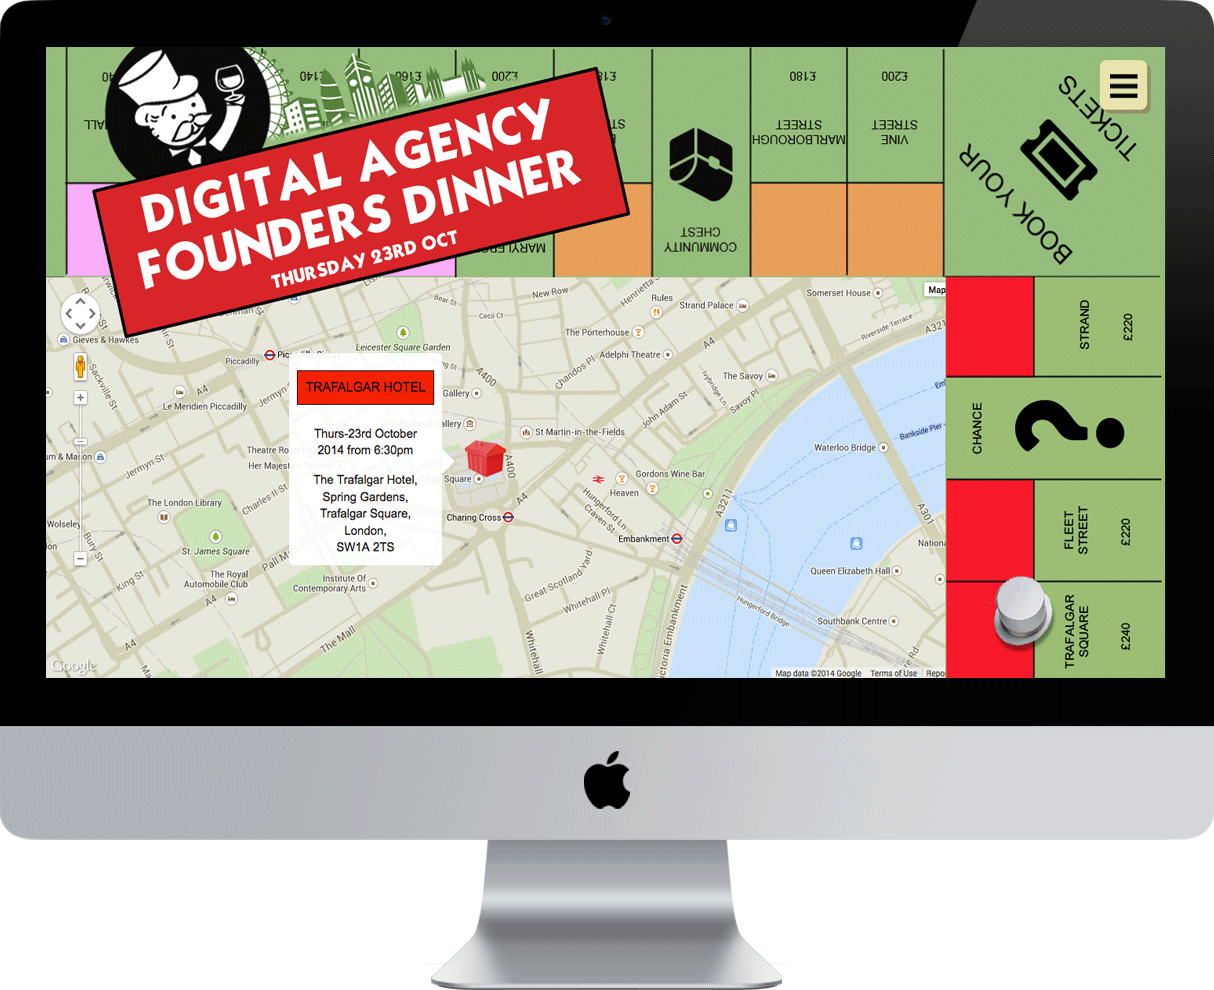 The Digital Agency Founders Dinner website layout